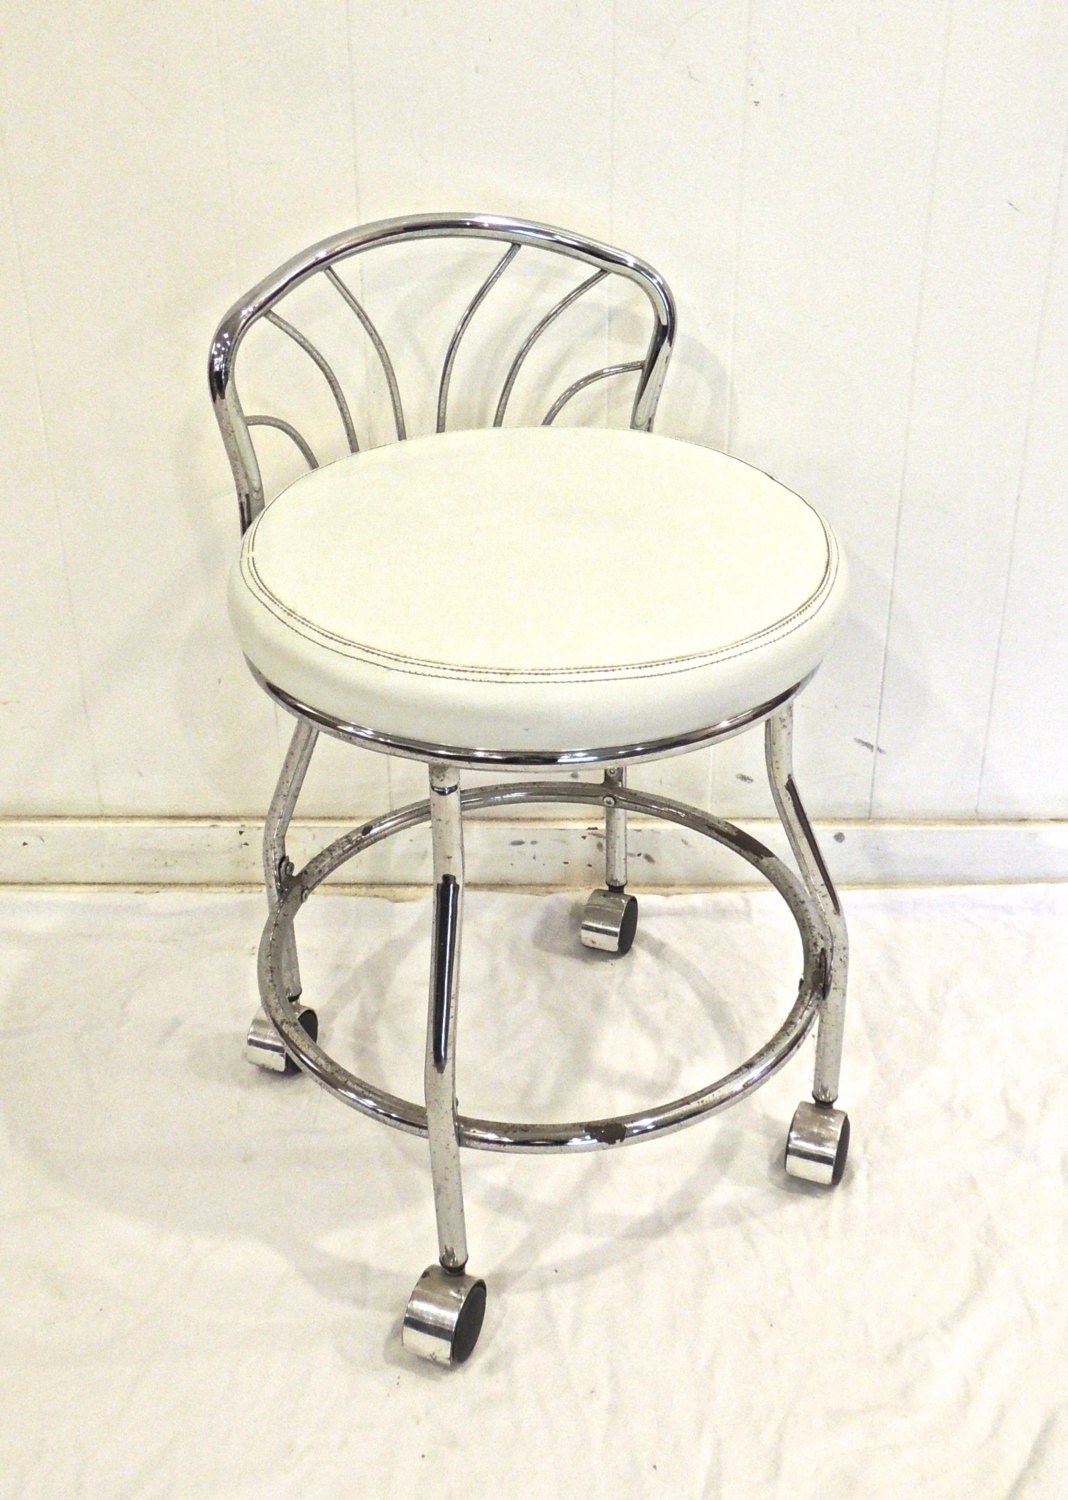 Vintage Chrome Vanity Stool 1970s Mid Century White By Mkmack